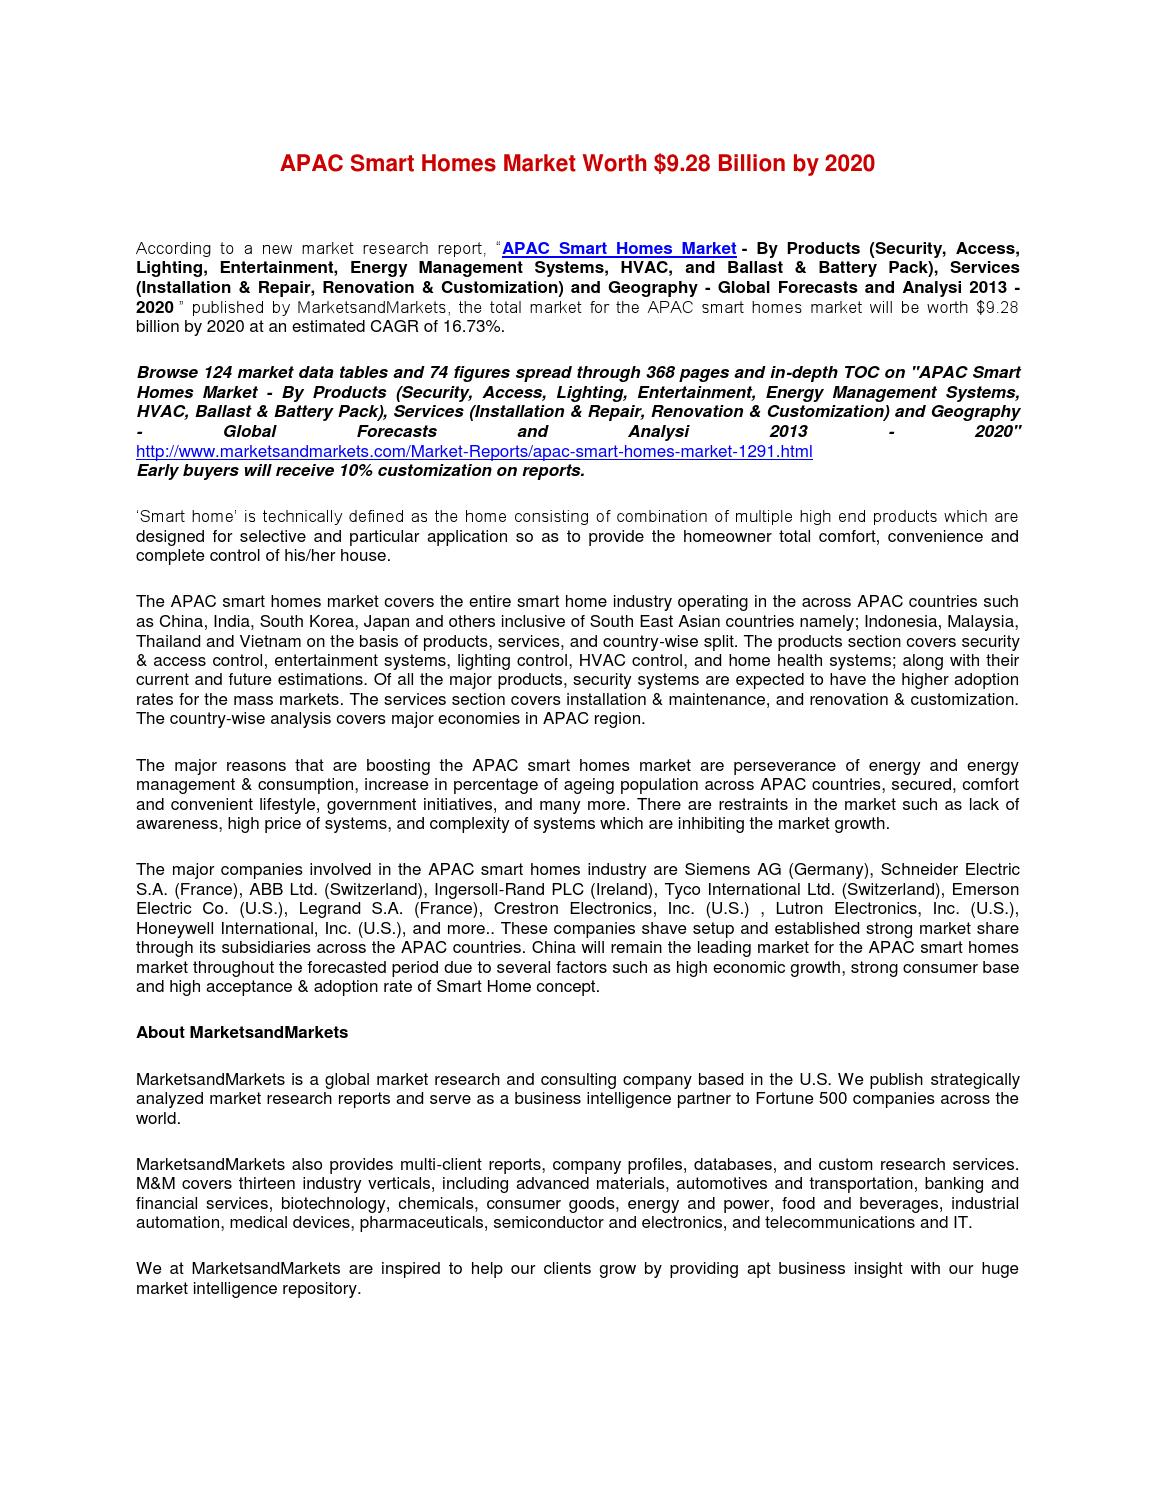 Best English Essay Topics On Compassion Essay Yoga Pdf How To Write A Thesis For A Persuasive Essay also Learning English Essay Example Introduction Paragraph For Argumentative Essay Paper Essay On Cow In English